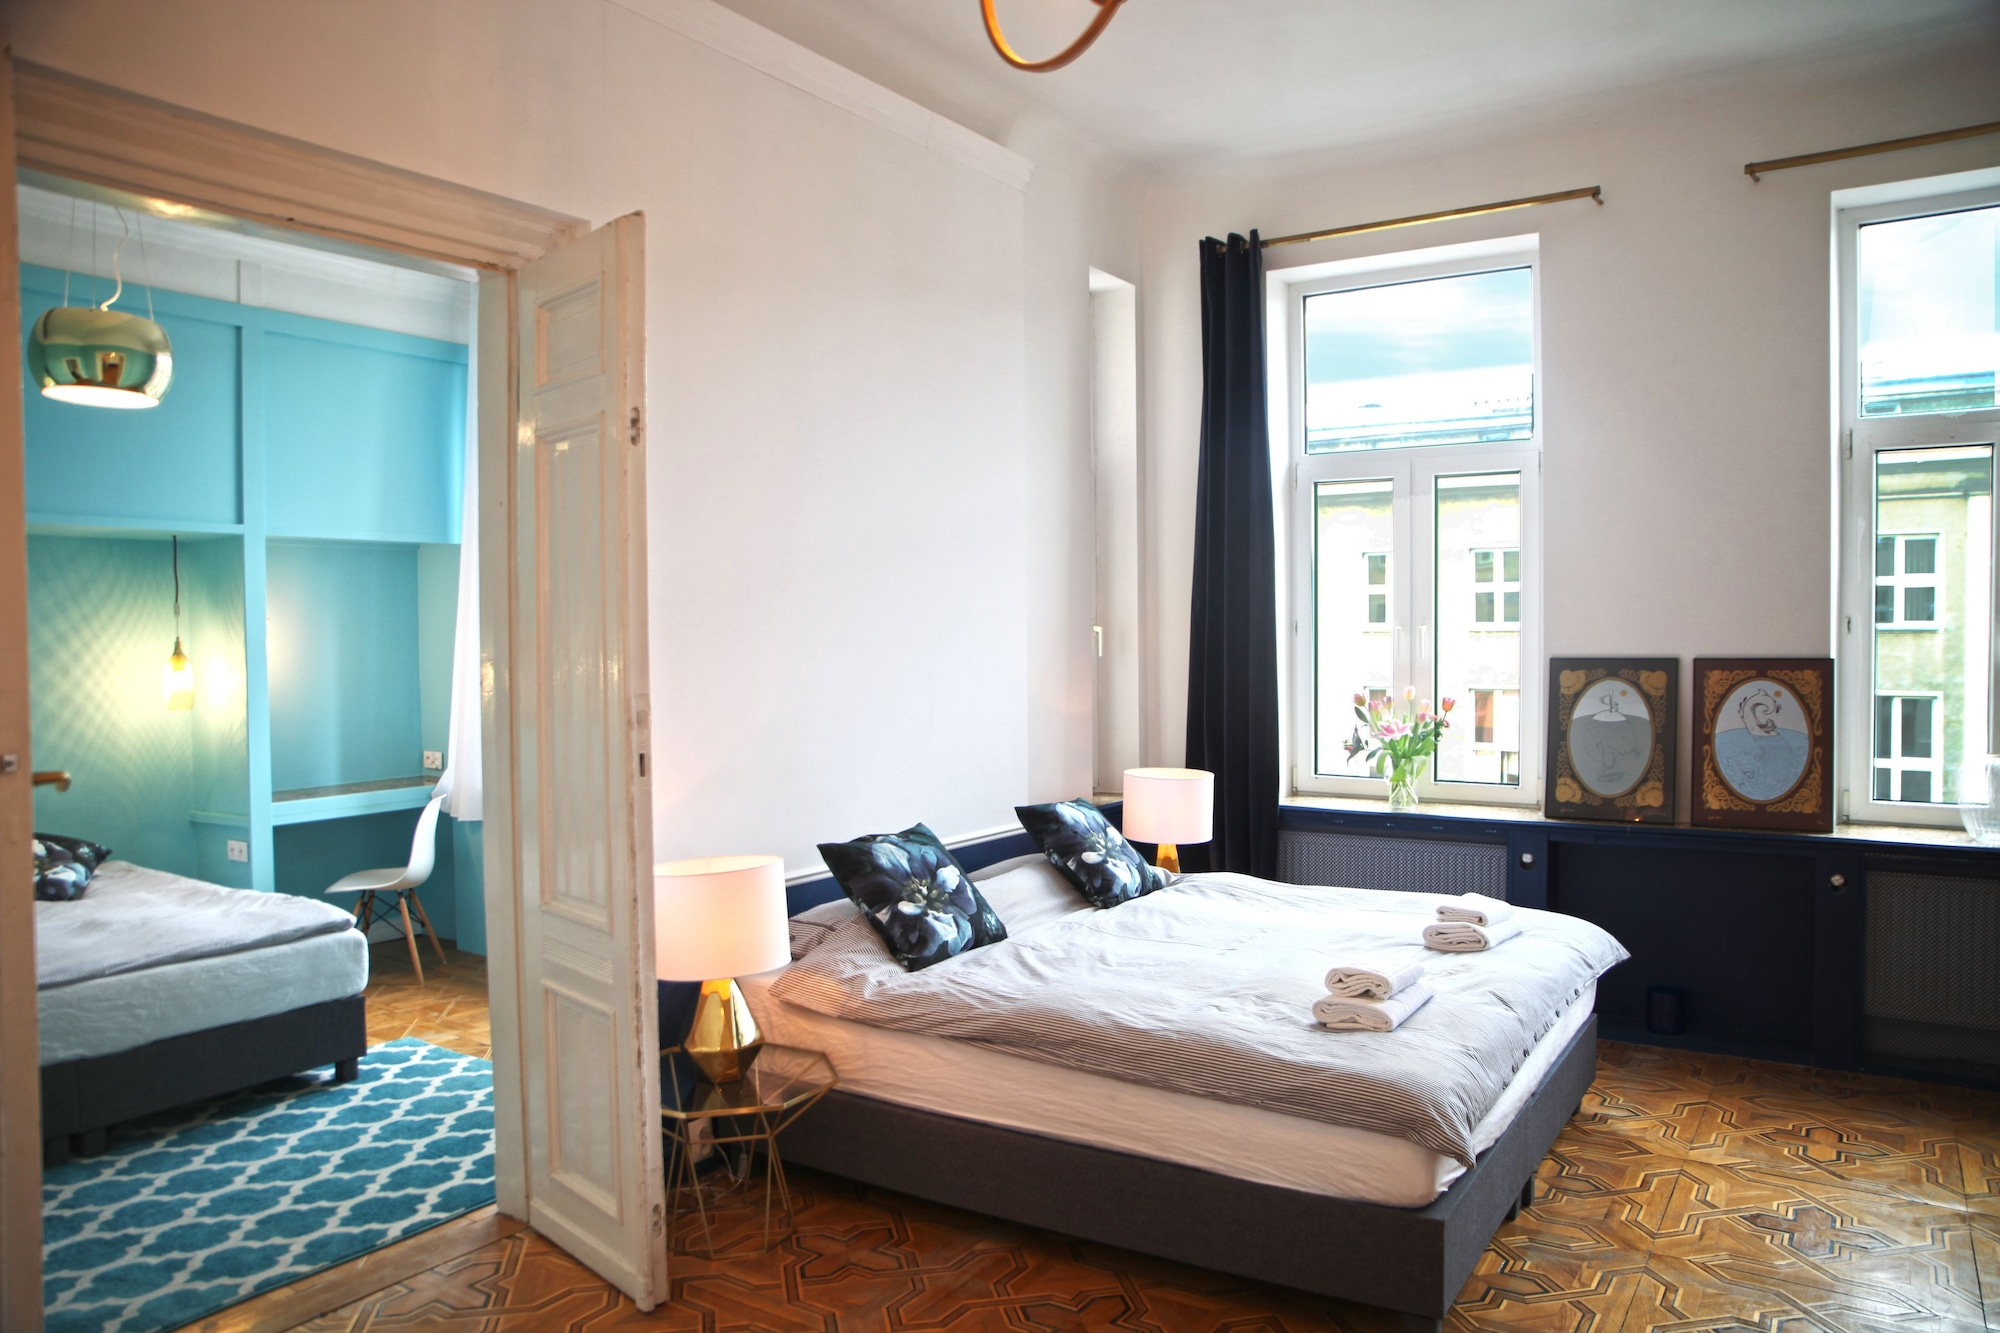 4th Floor Bed and Breakfast, Warsaw